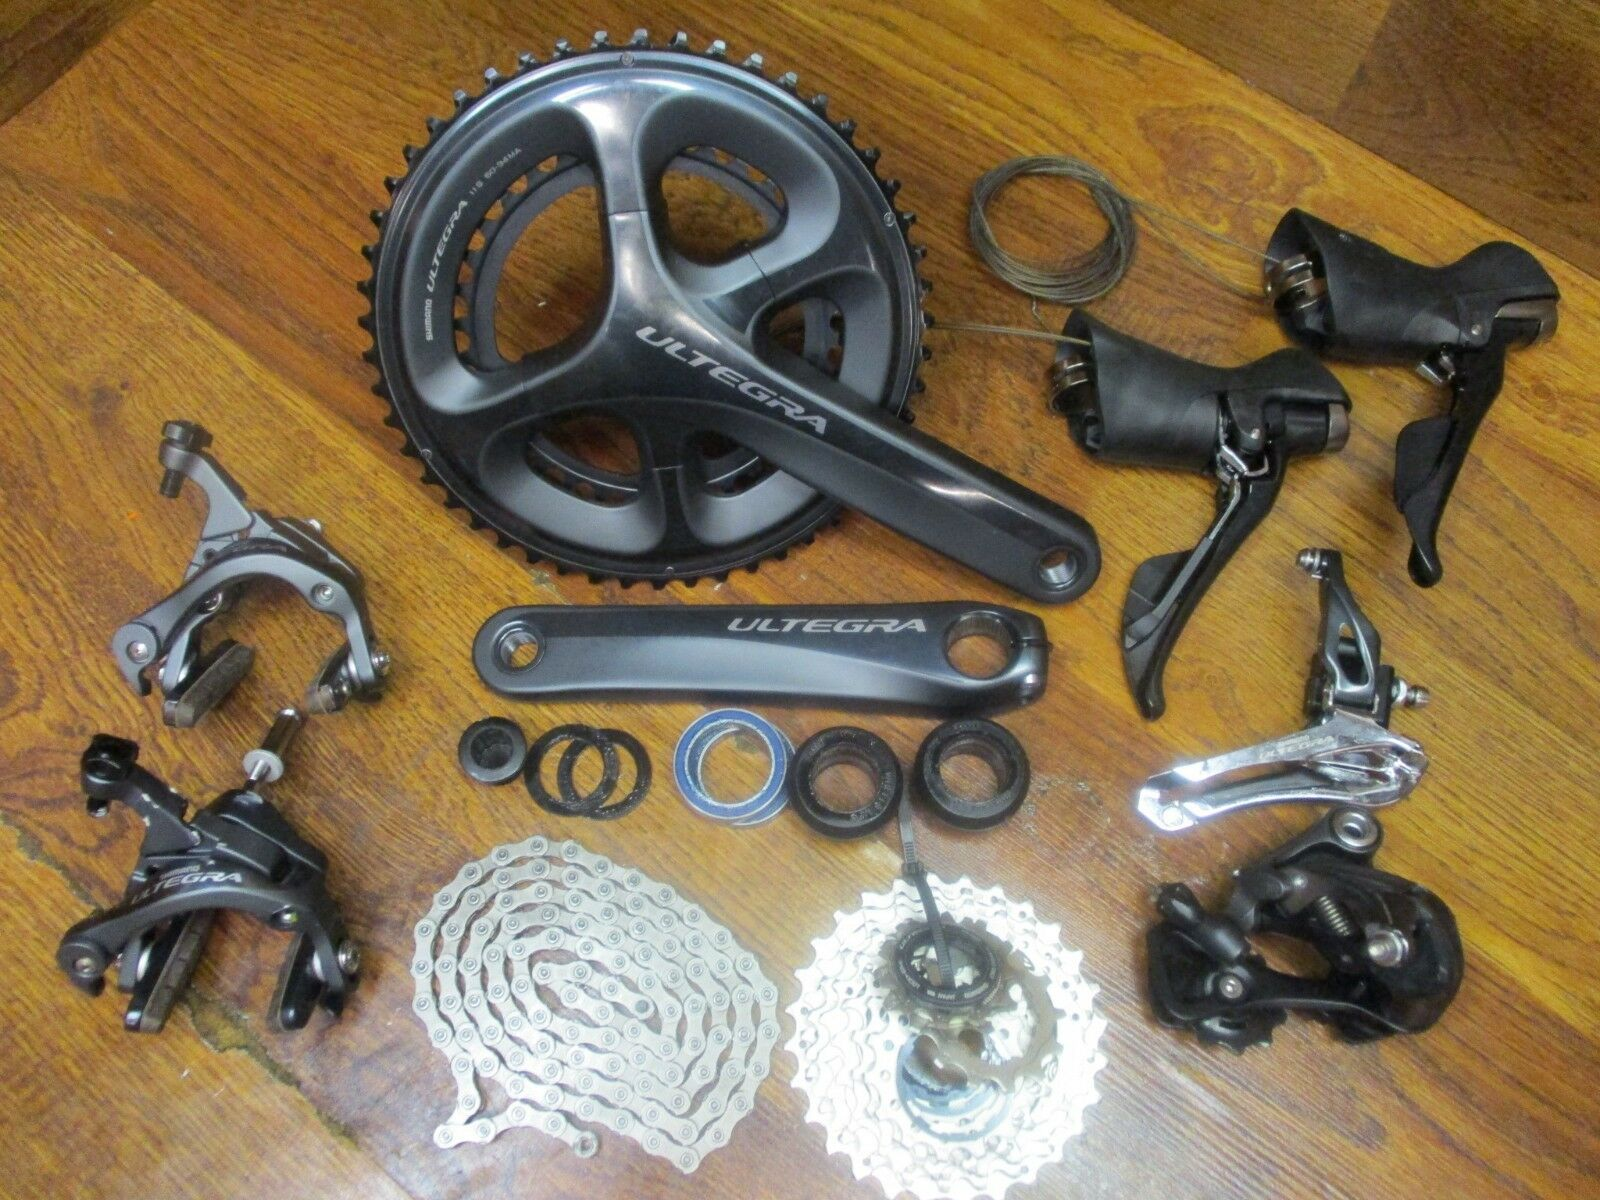 SHIMANO ULTEGRA 6800  172.5L 50 34T 11-28 GROUP GRUPPO BUILD KIT 11 SPEED DOUBLE  good quality